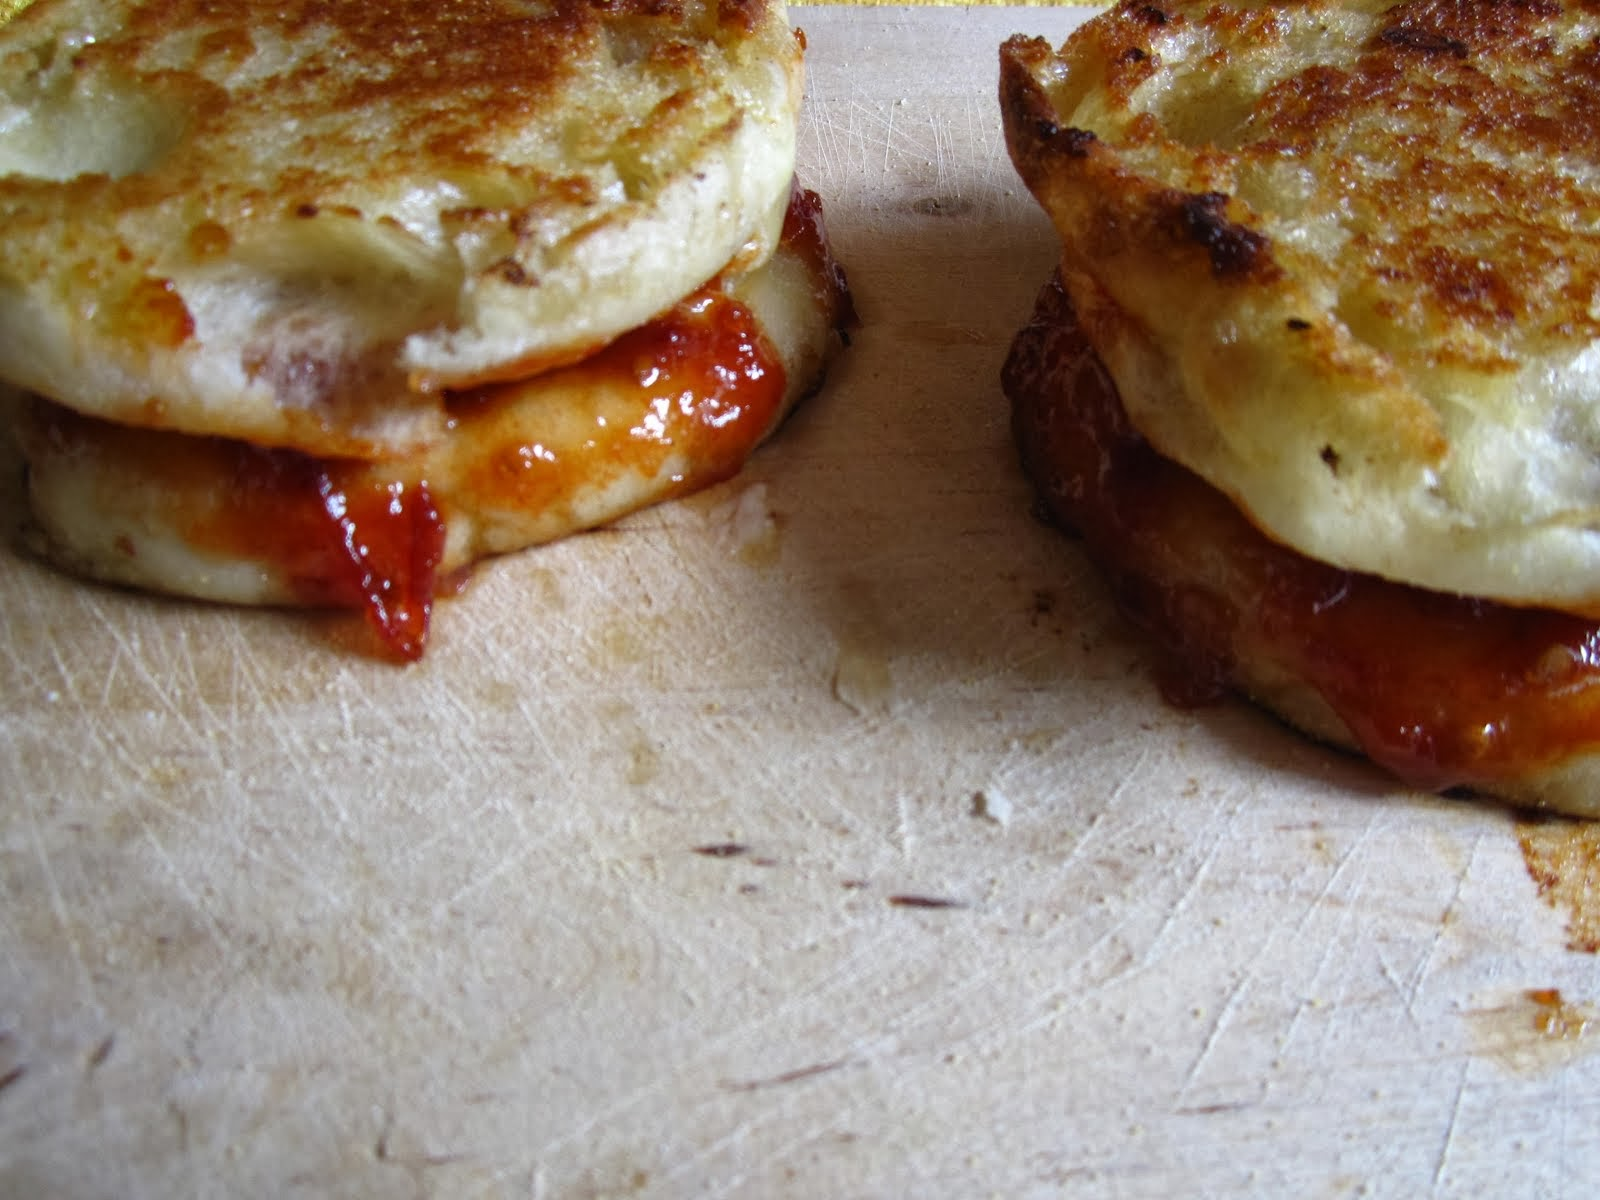 Tomato Jam (On a Grilled Cheese Sandwich)